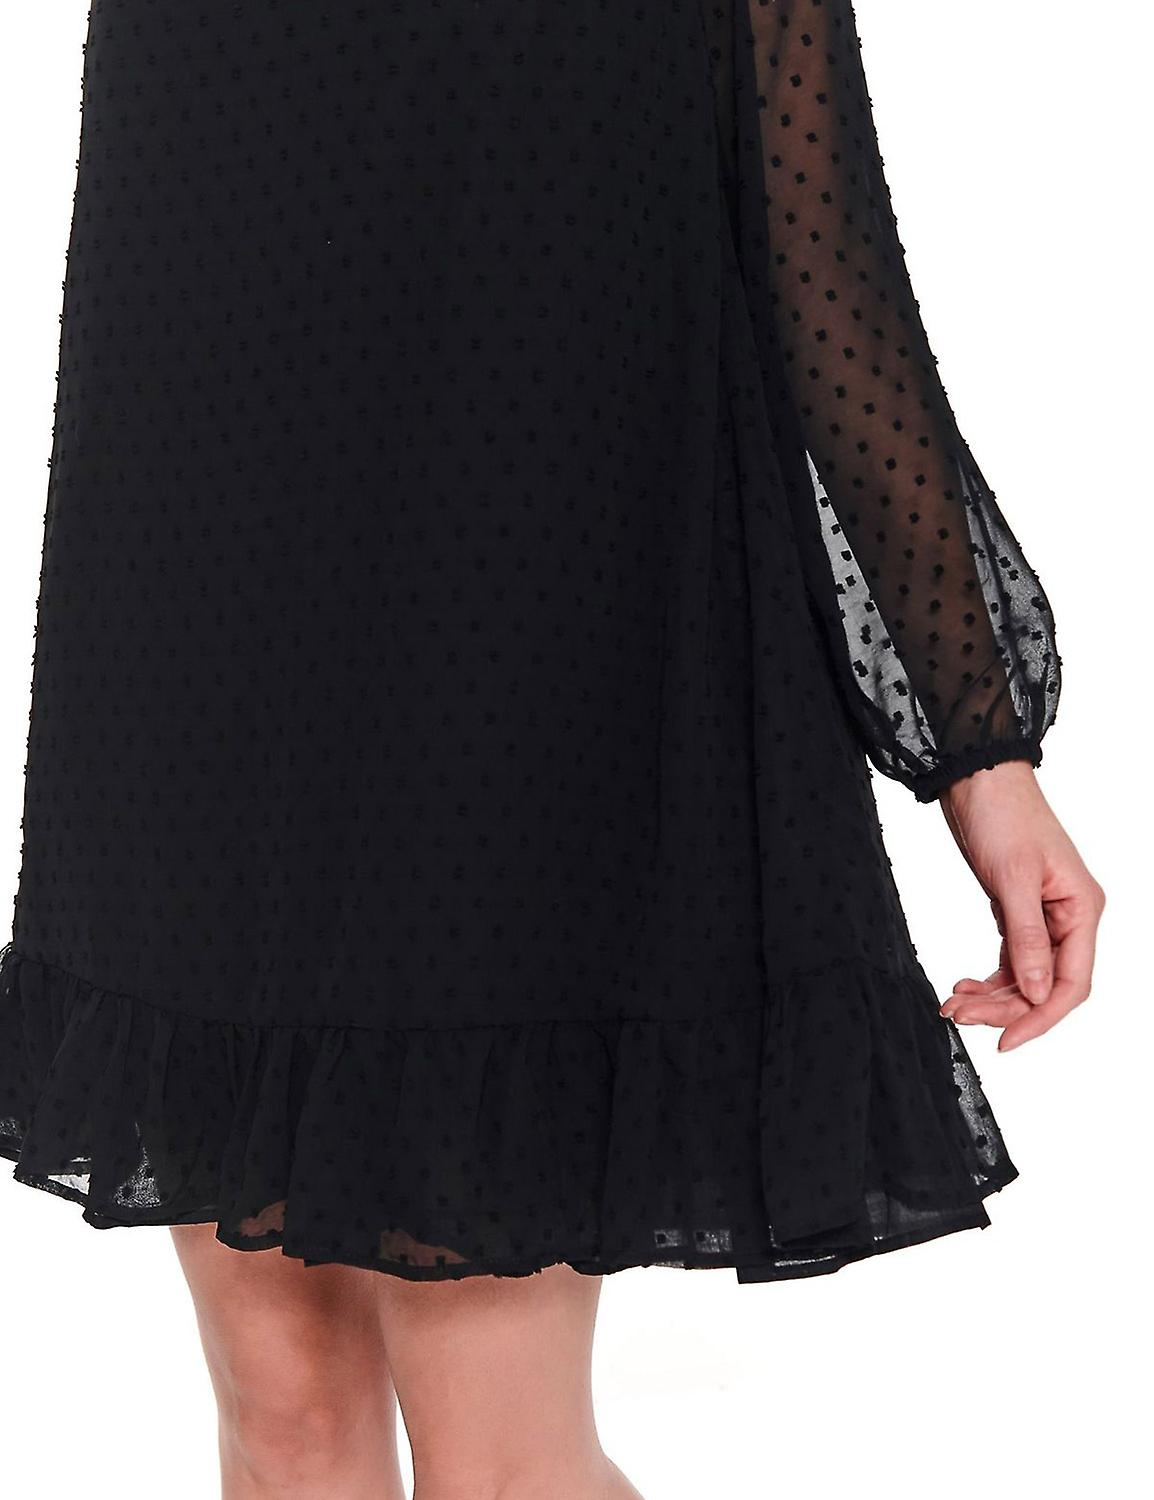 Top Secret Women's Dress Midi hRJomW